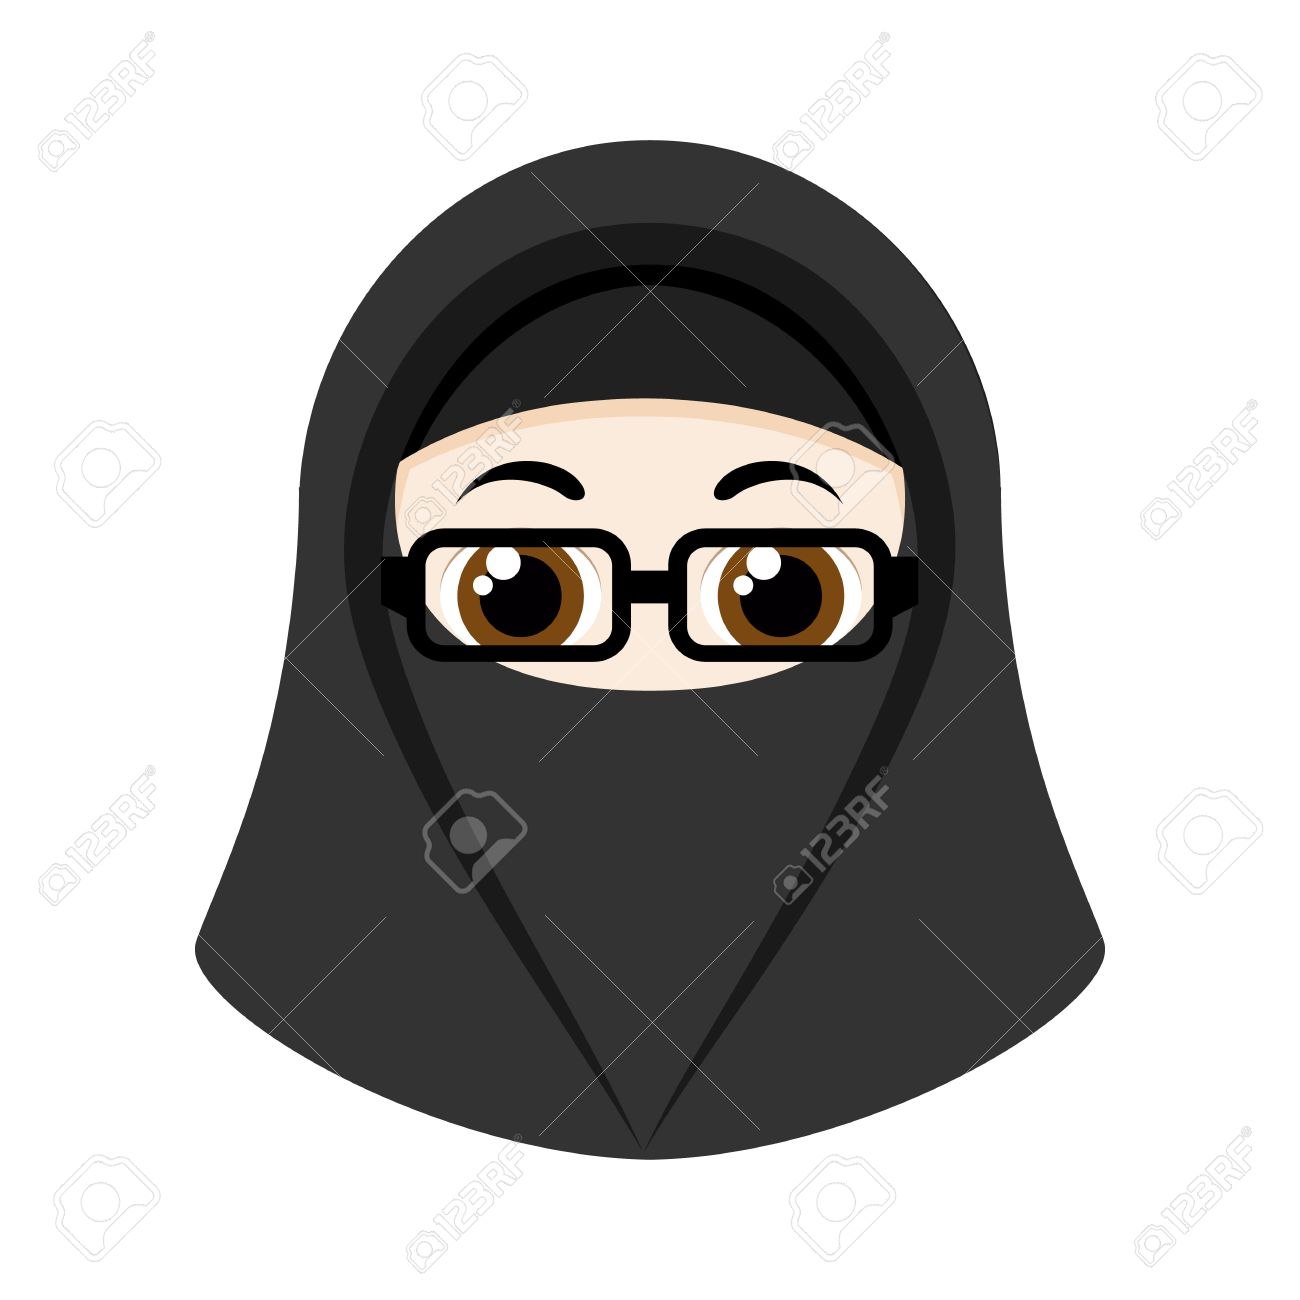 Muslim women wearing hijab cartoon vector. Cartoon Girl With Black Niqab Isolated On White Background Royalty Free Cliparts Vectors And Stock Illustration Image 56428342